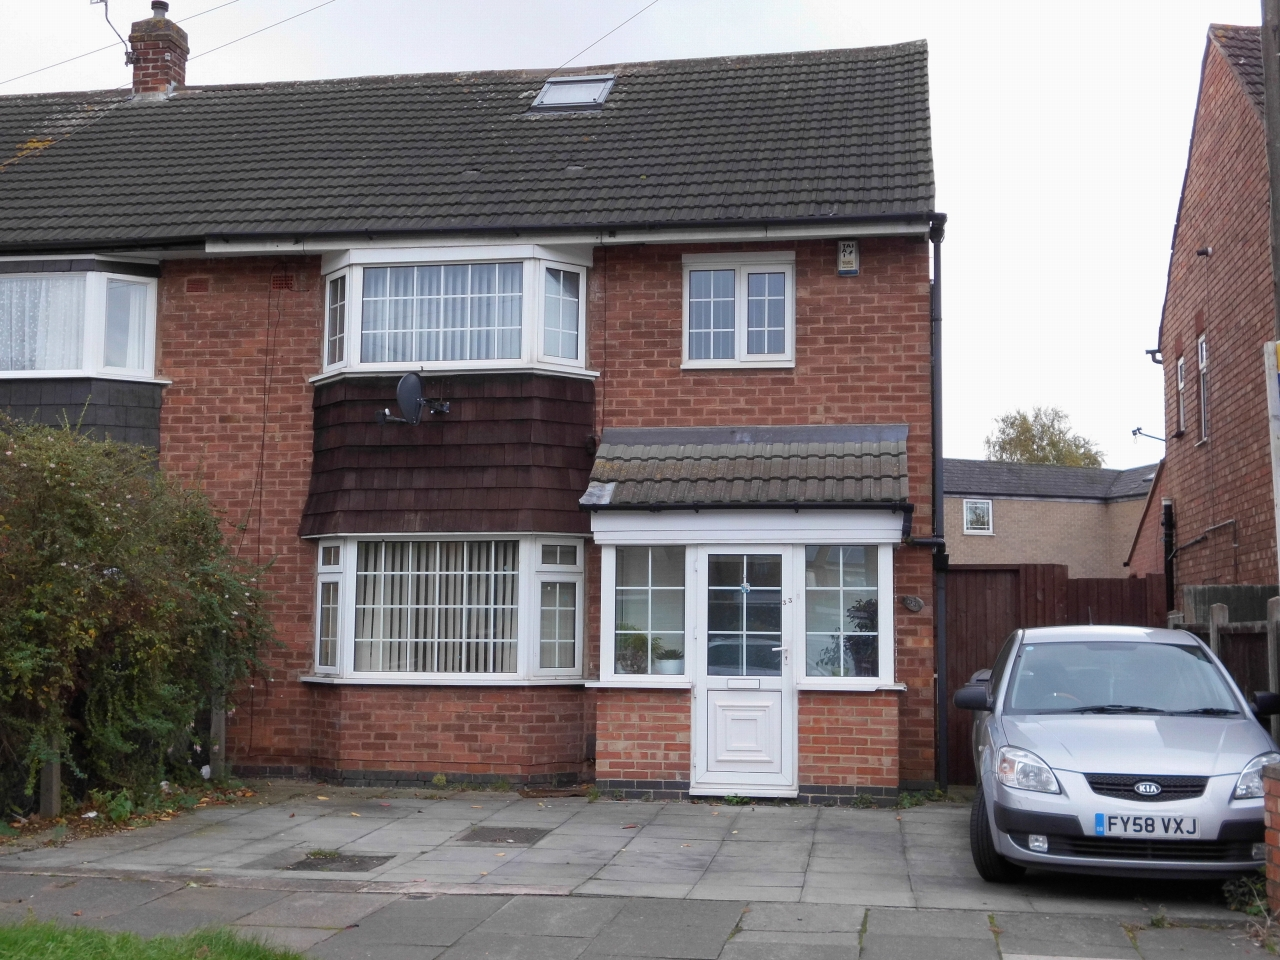 3 bedroom barn conversion house SSTC in Leicester - Photograph 1.